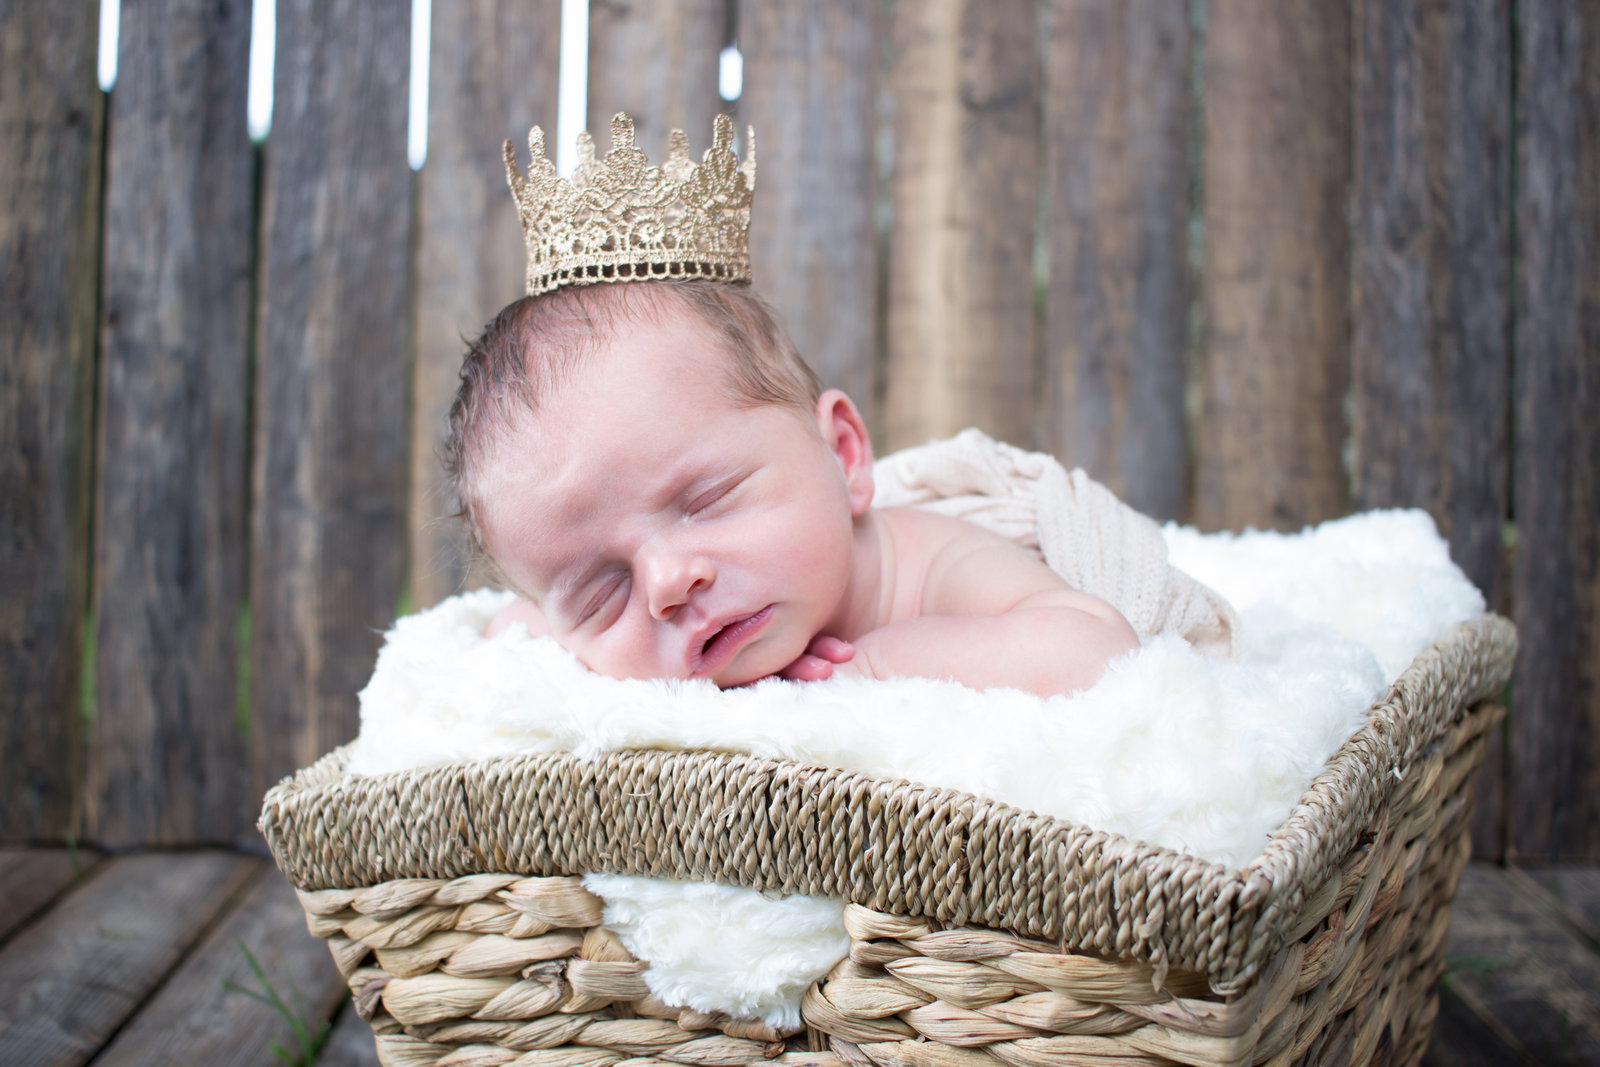 newborn baby boy with crown on in a basket